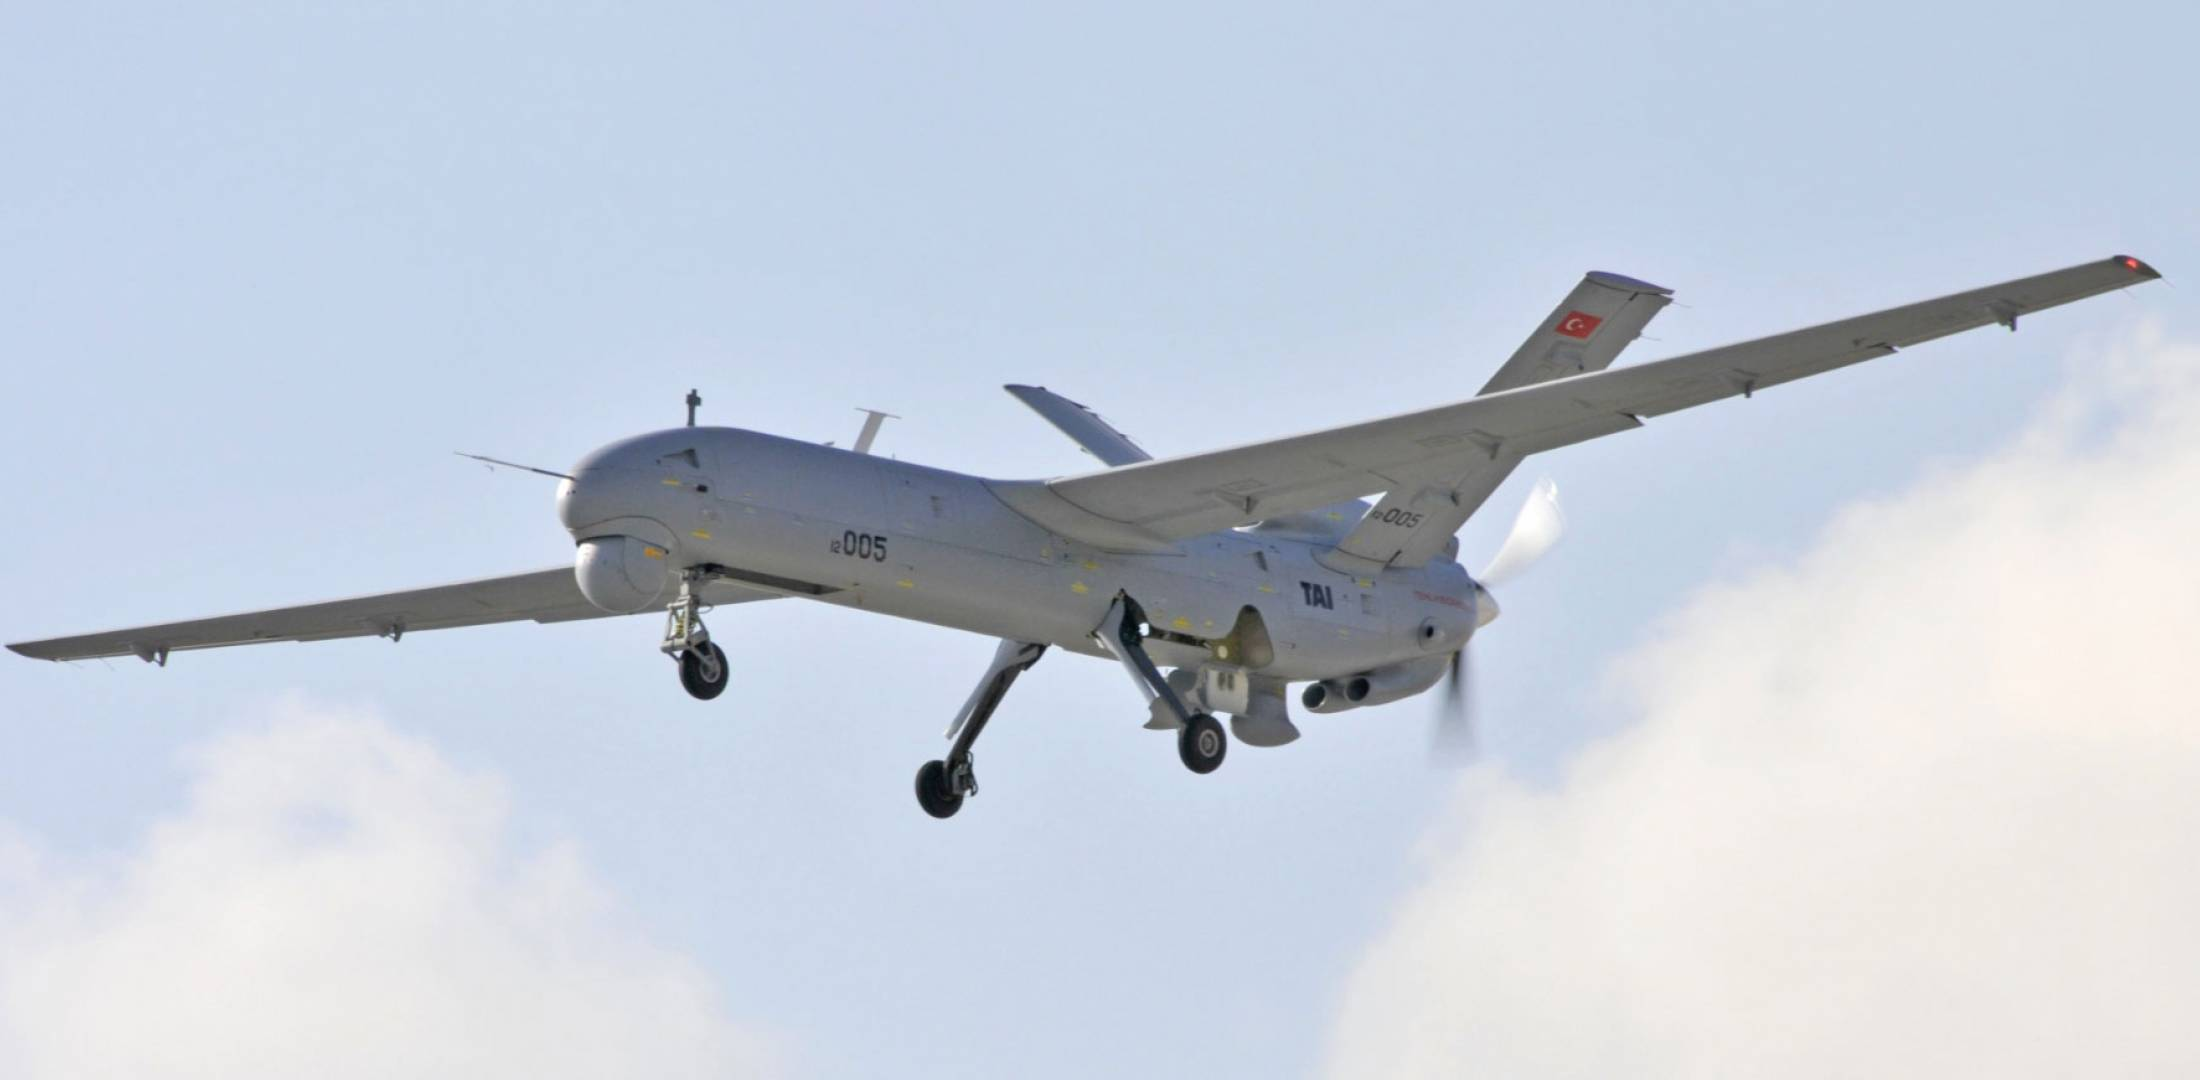 Anka-A UAV in flight